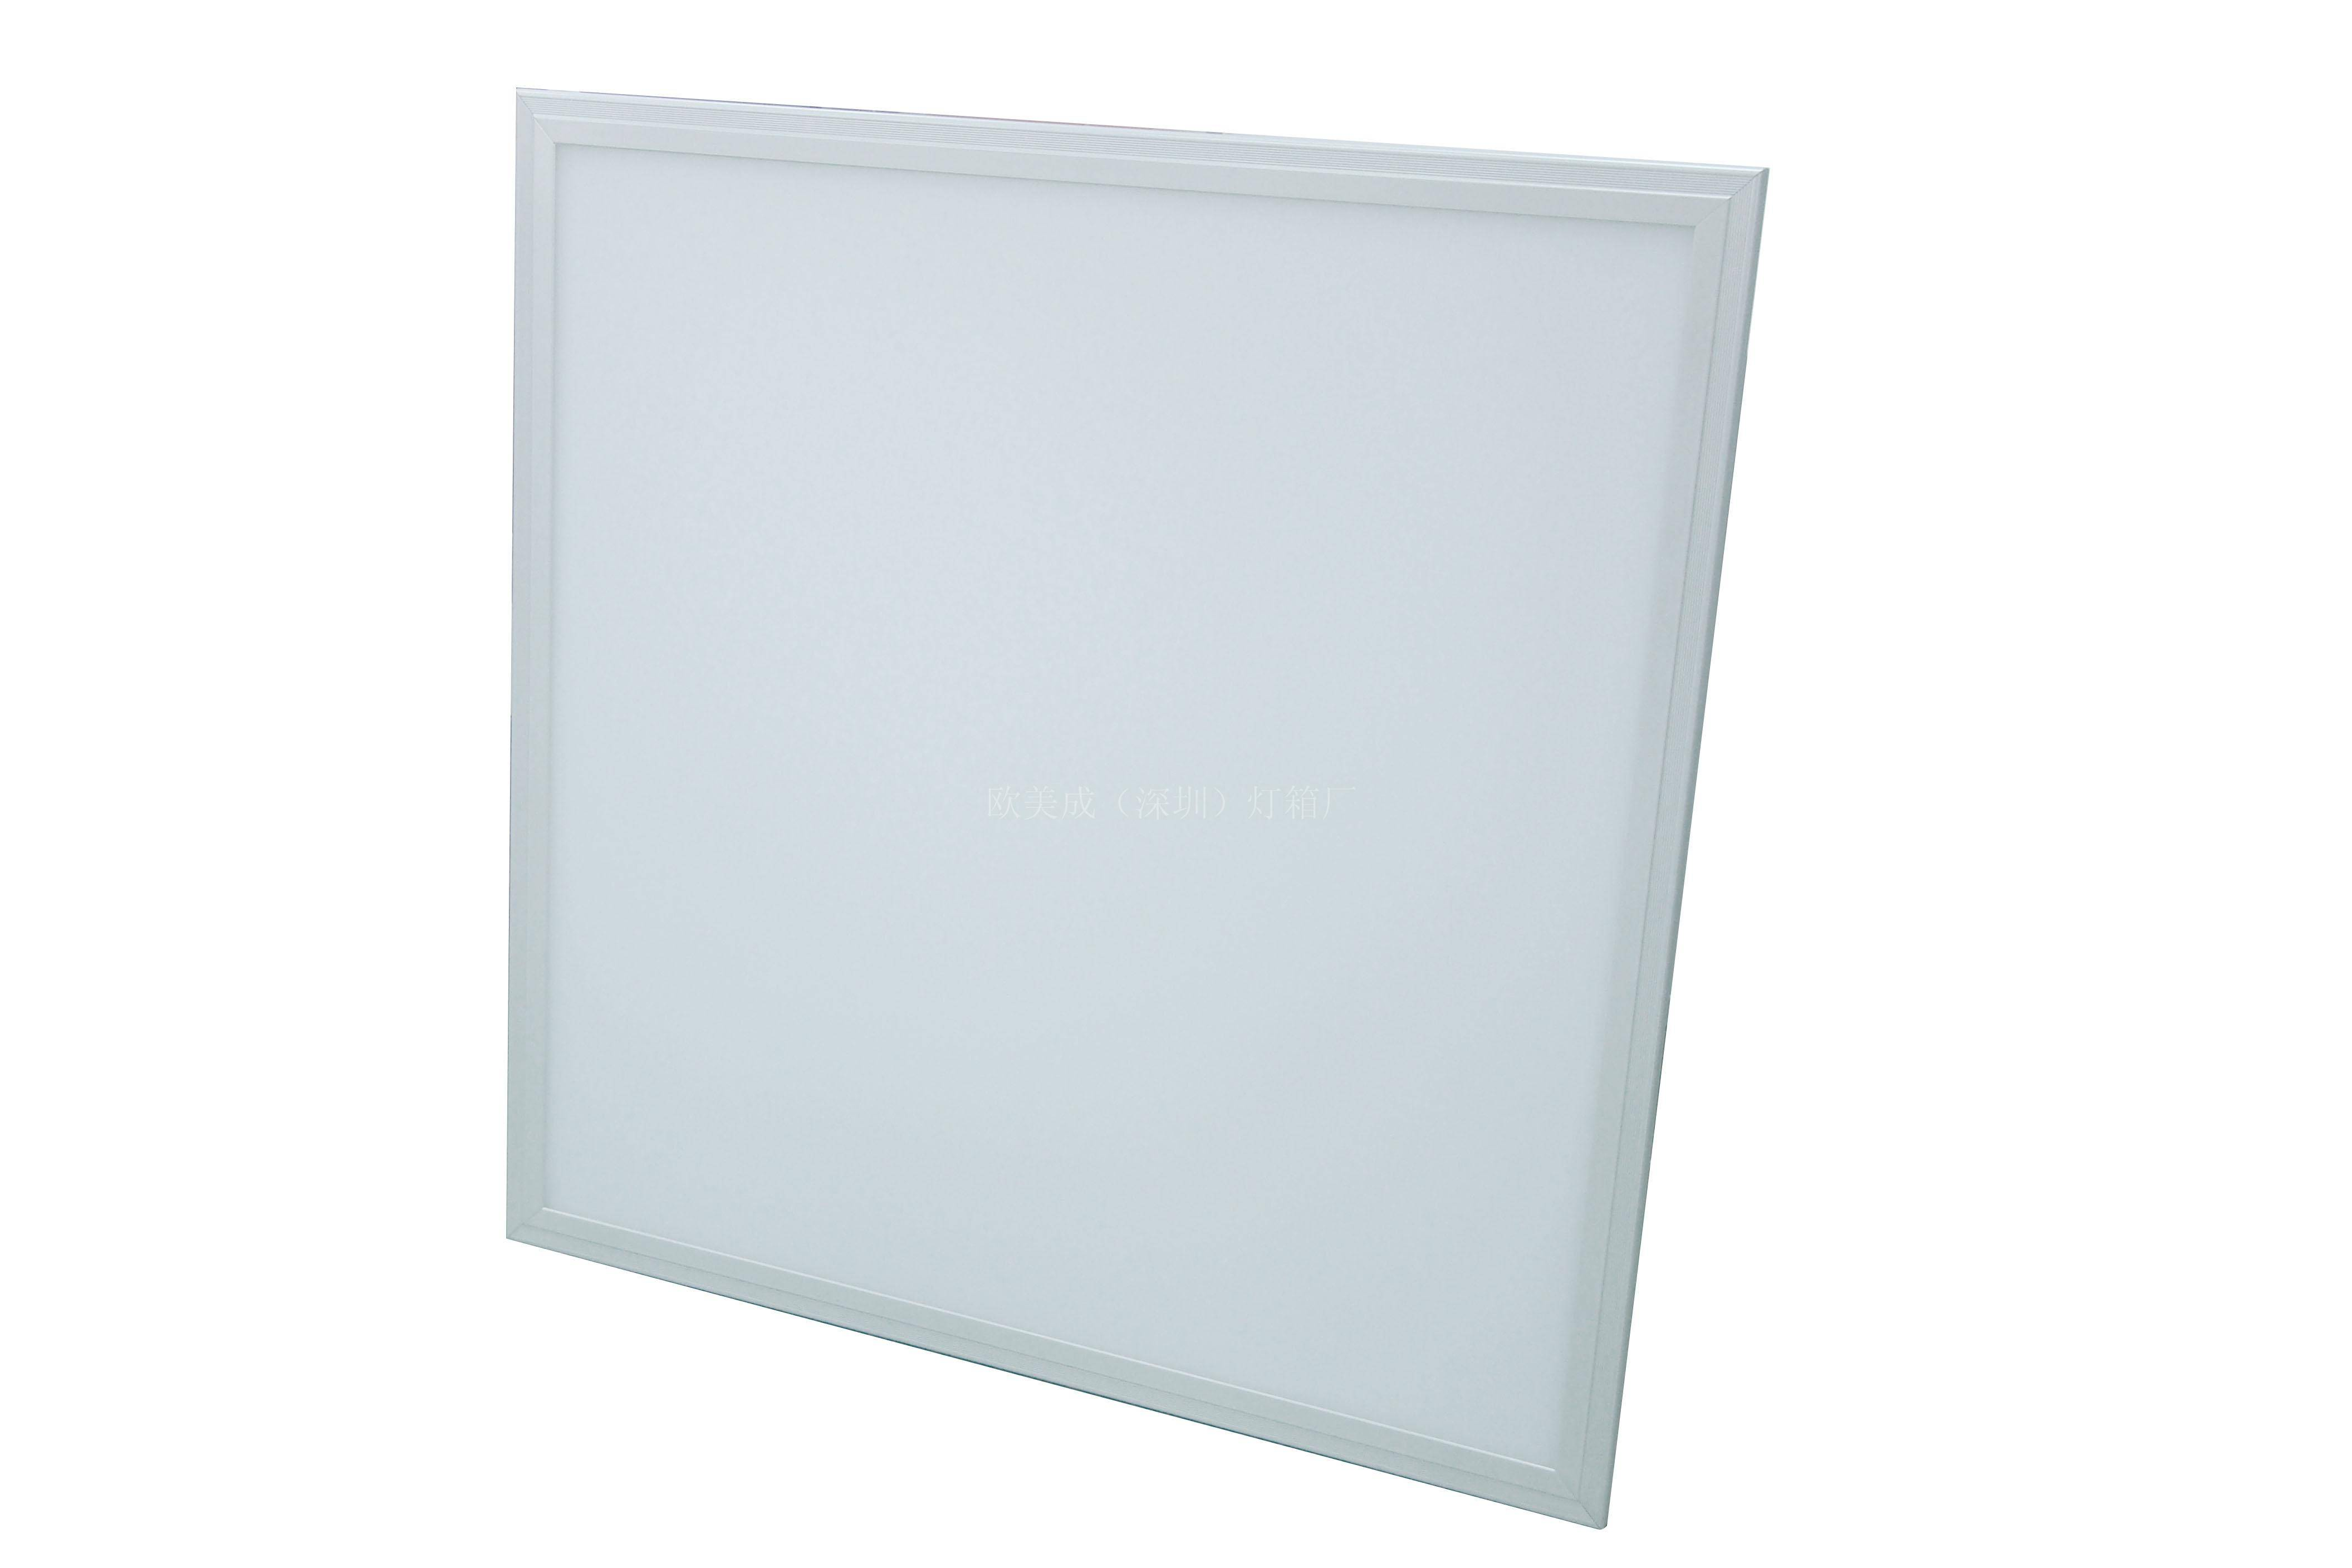 300*300mm High Efficiency 15w 1500lm LED Panel Light